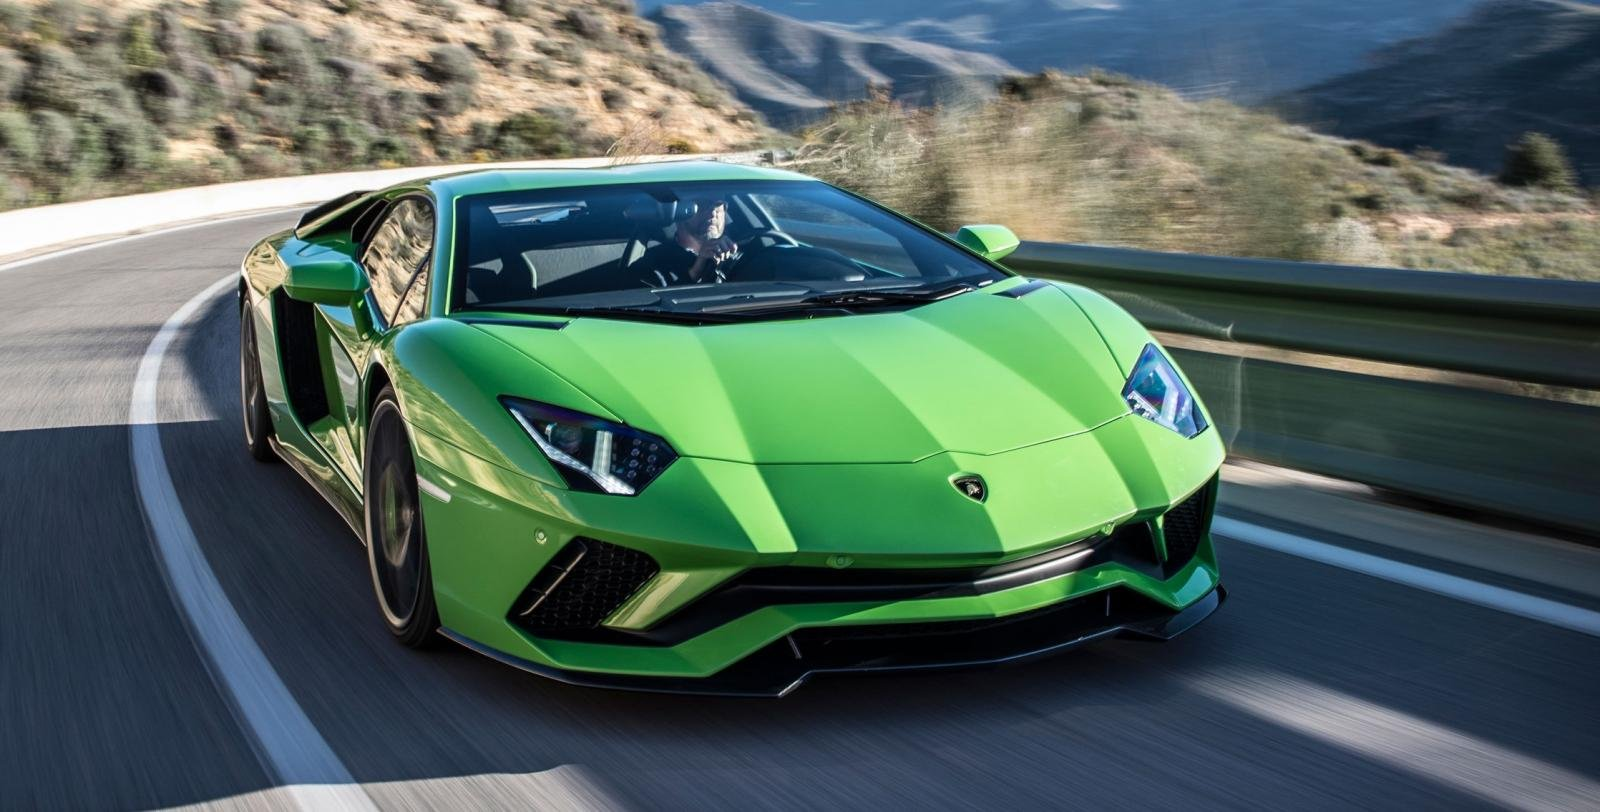 15 Most Expensive Cars in India - Lamborghini Aventador S